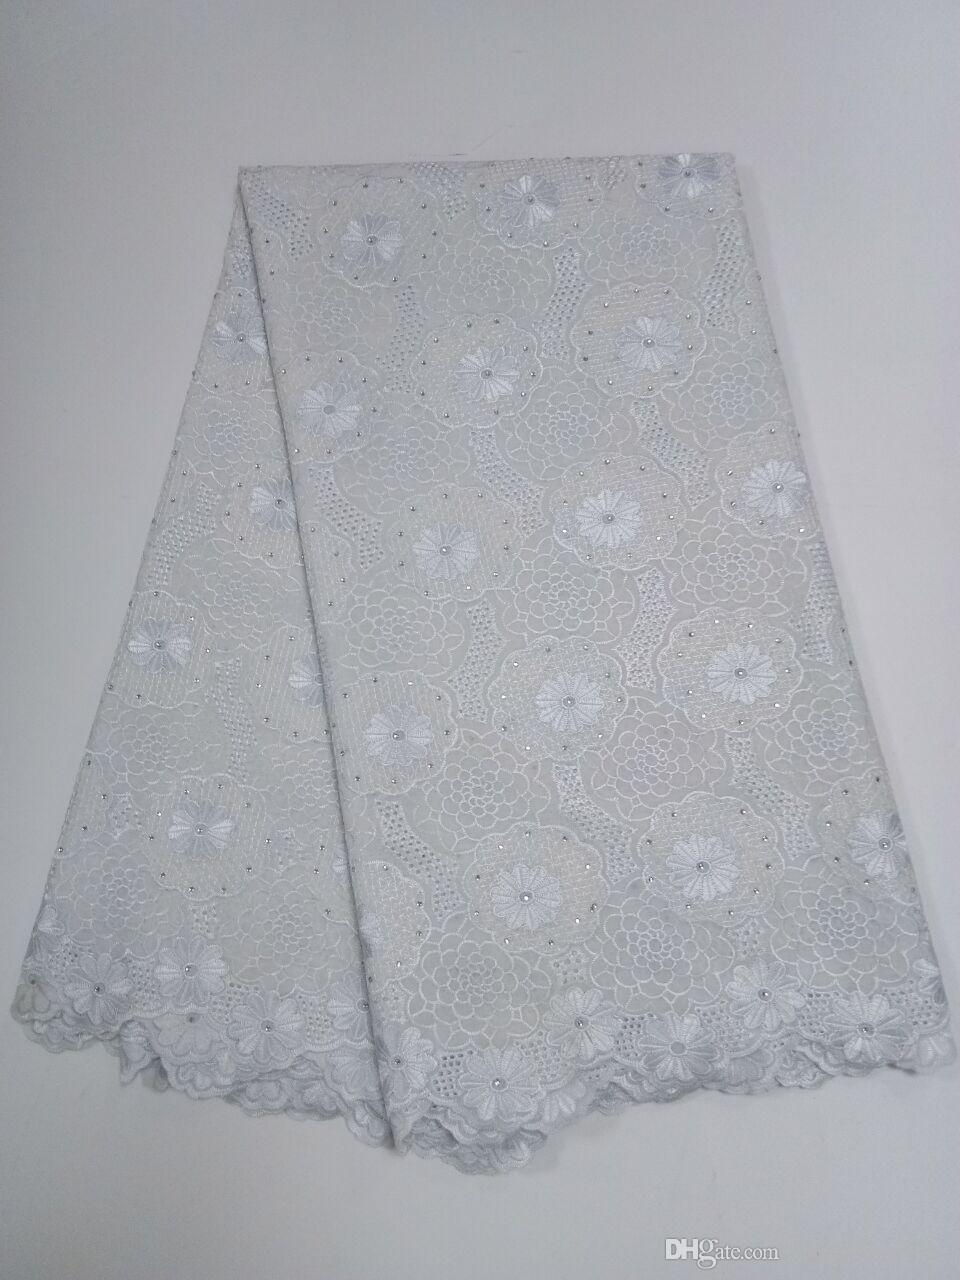 ig African Swiss Voile Lace High Quality Eyelet Cotton Swiss Lace Material Latest African Swiss Lace Fabric With Stones GYCL044